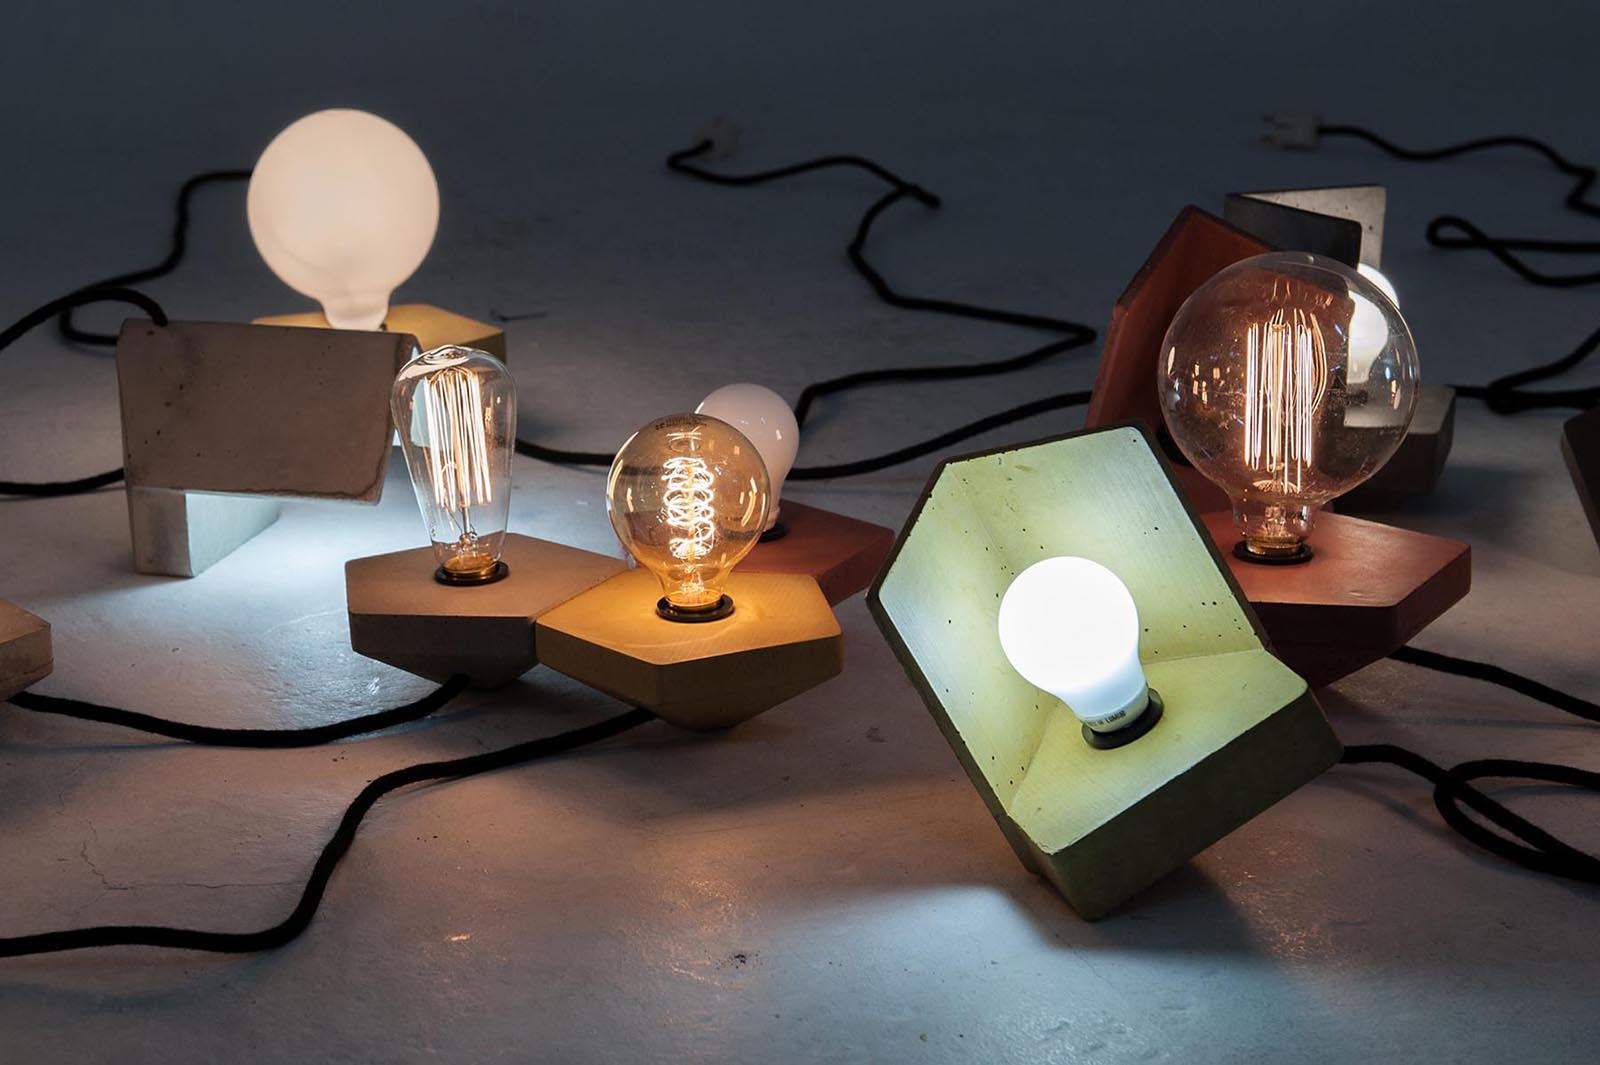 30° / 35° lamps